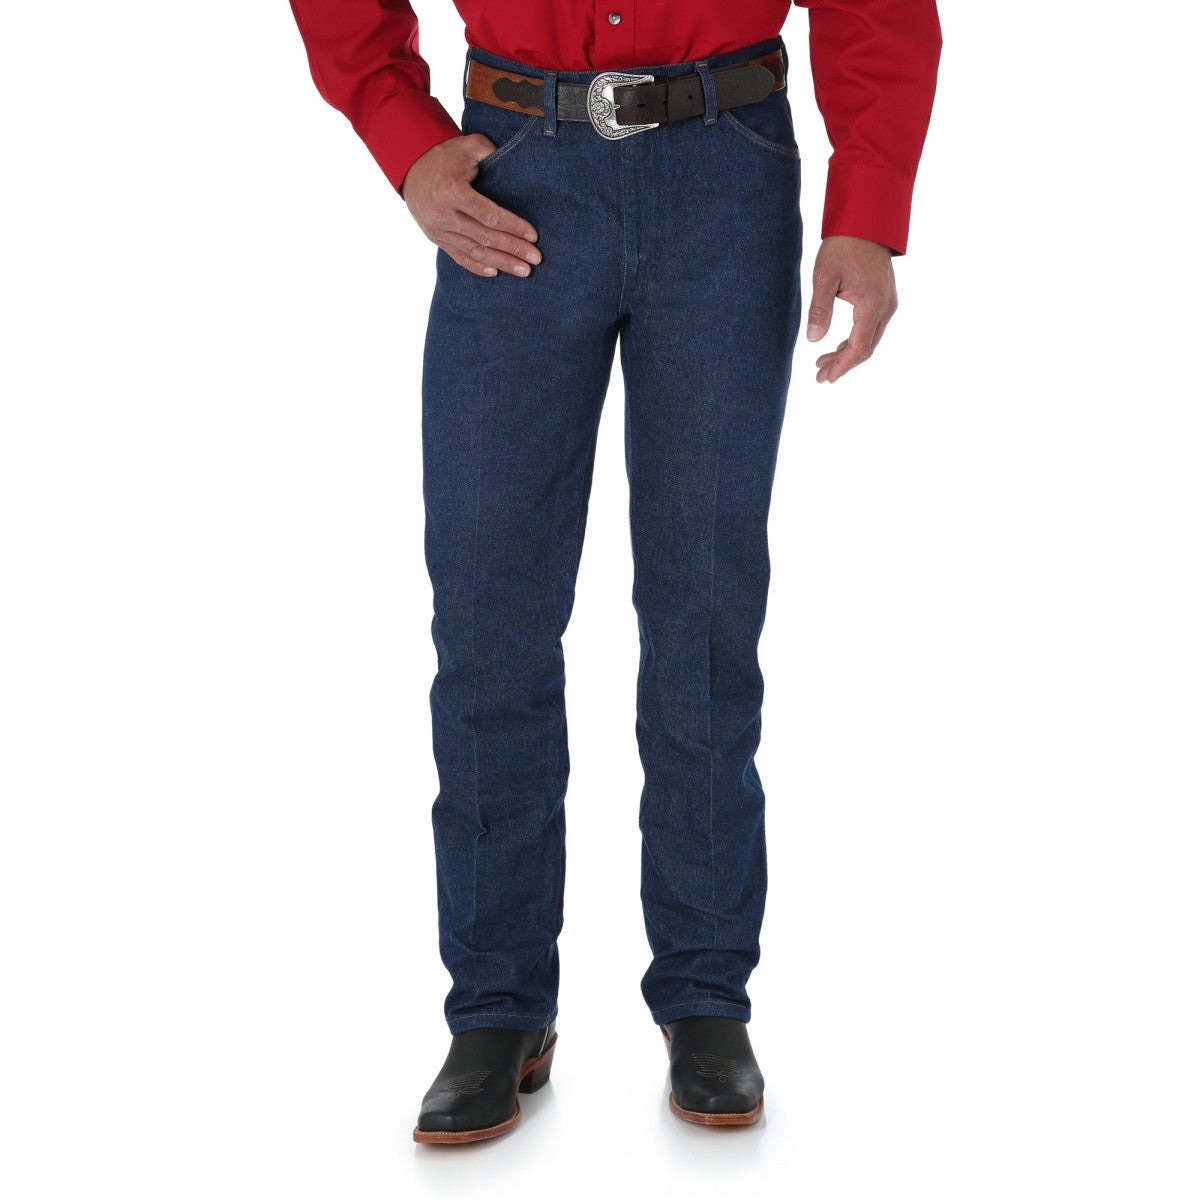 Men's Wrangler Rigid Cowboy Cut Slim Fit Jean #936DEN